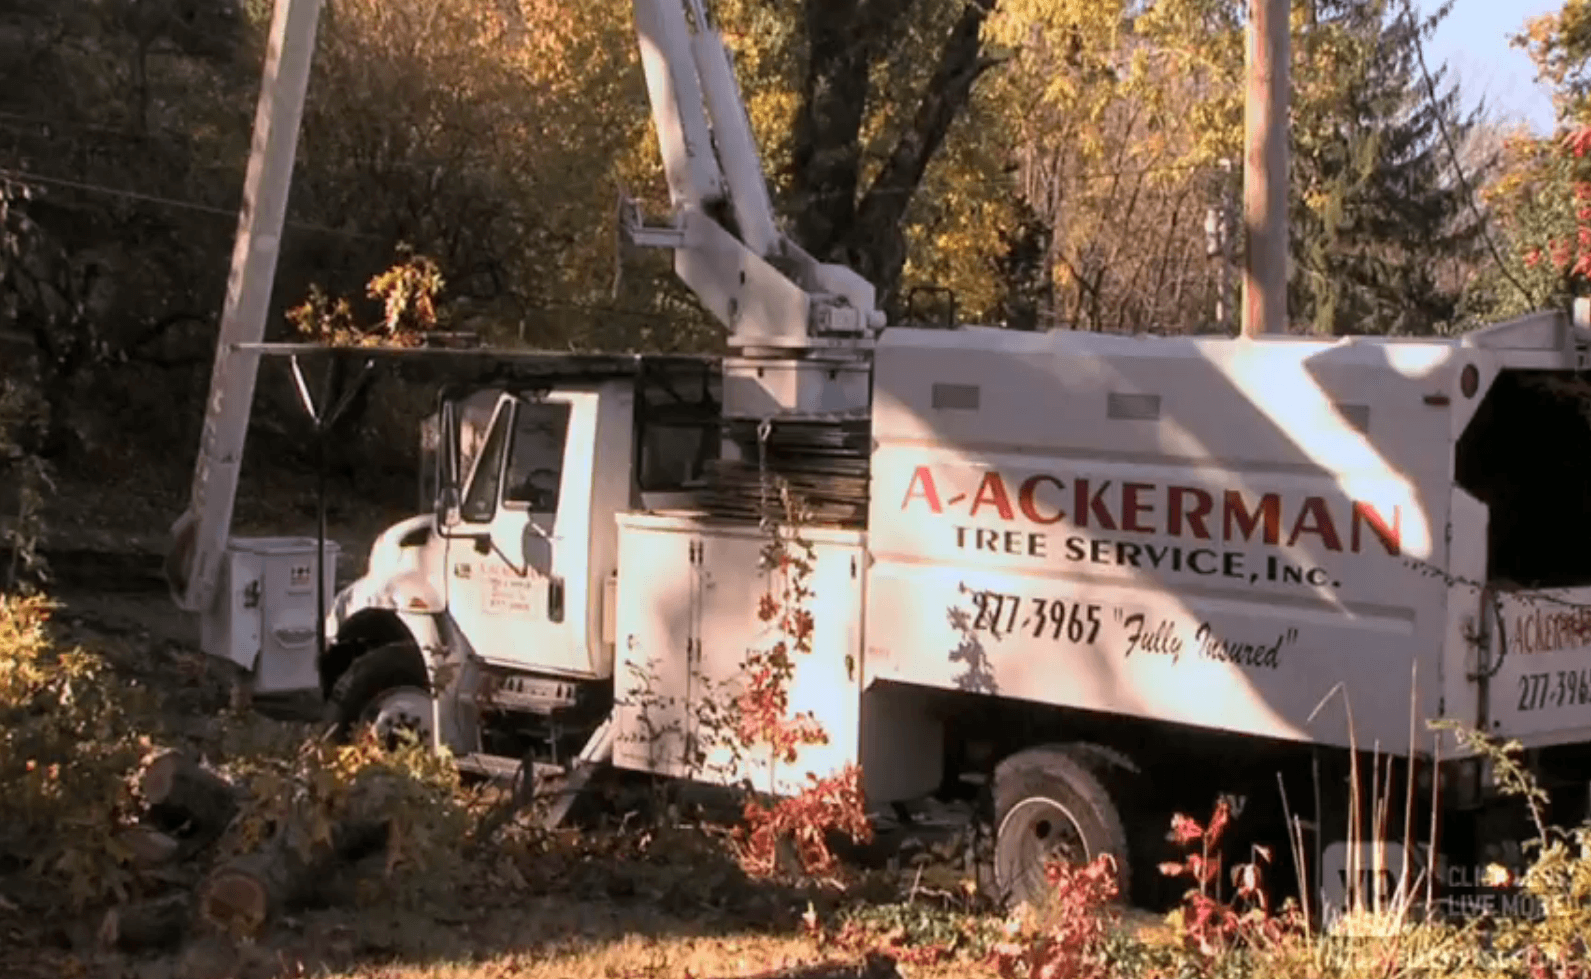 Ackerman Tree Service Bucket Trucks